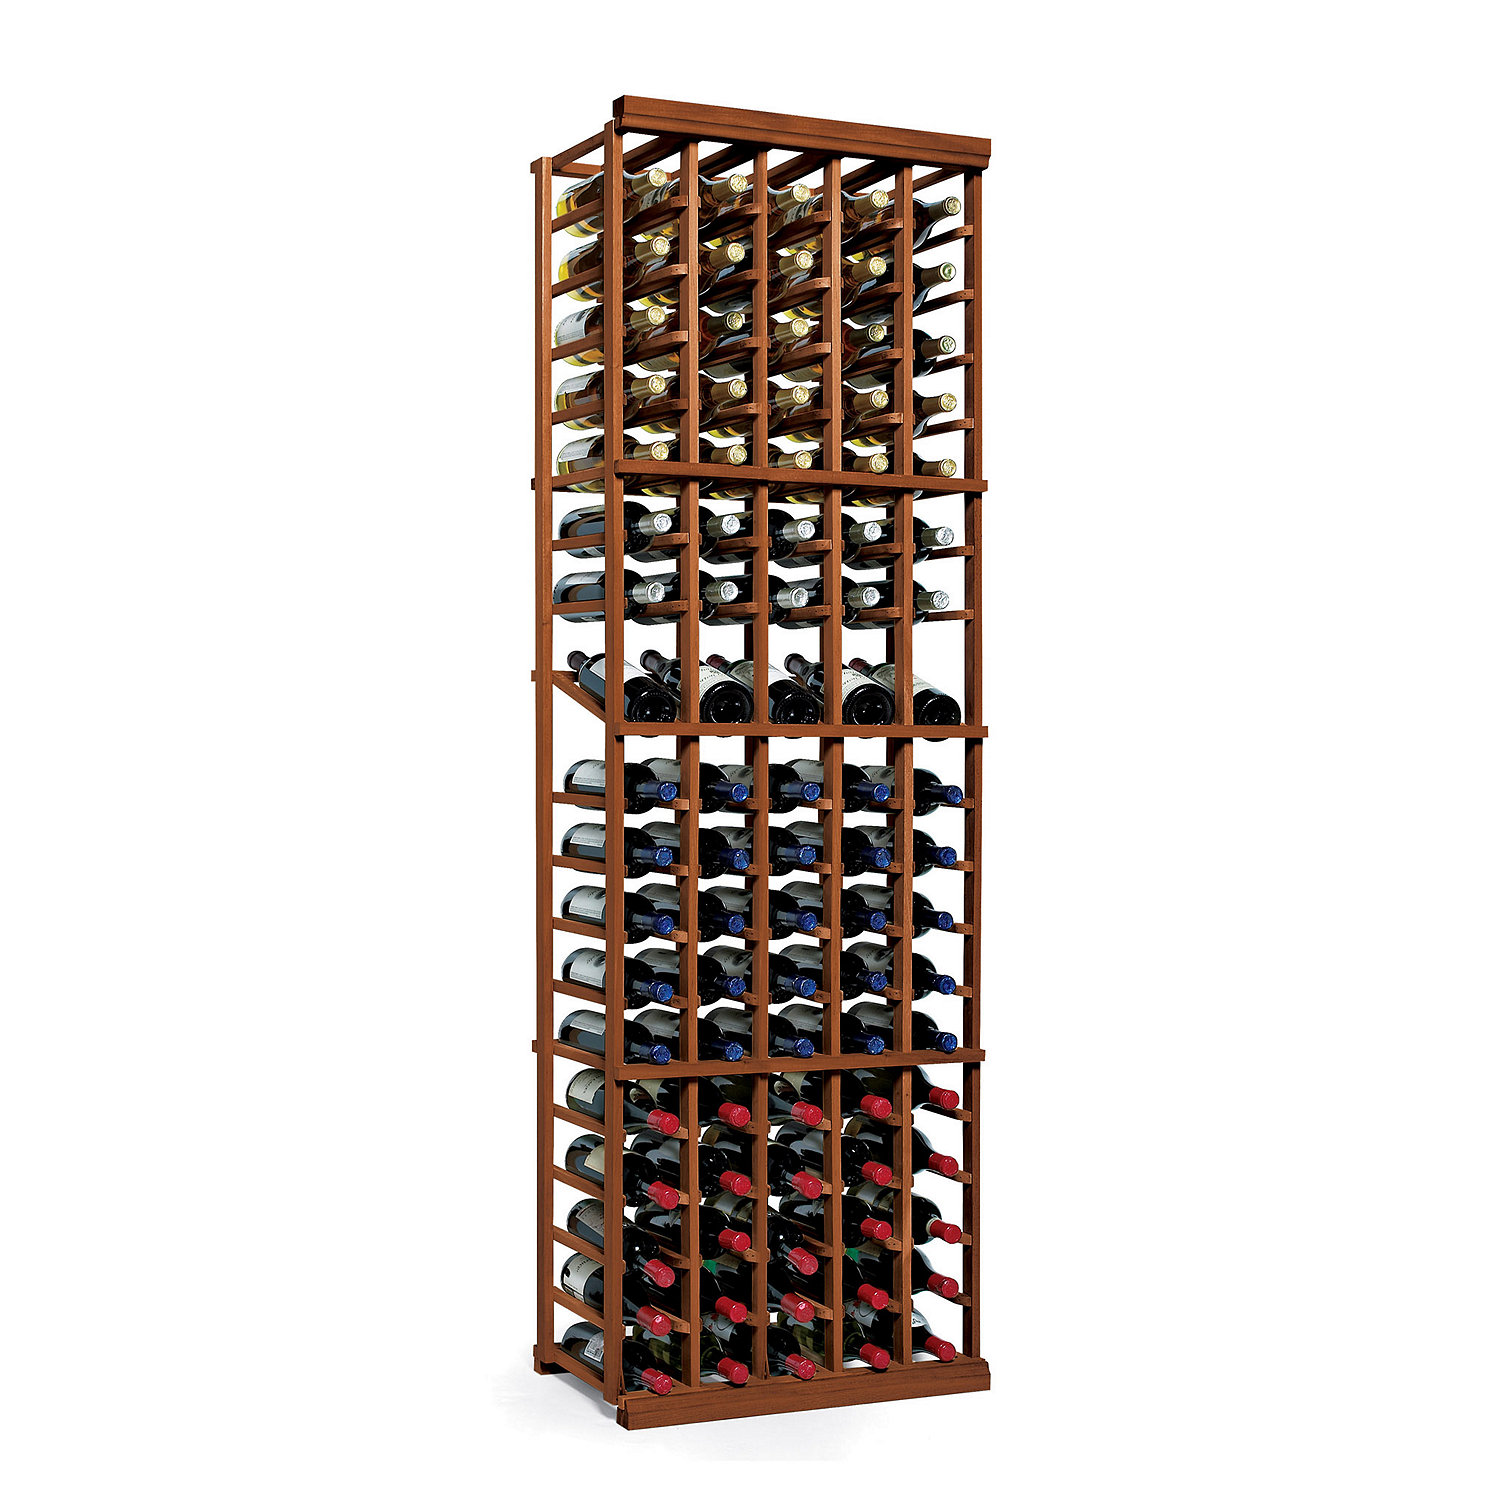 Preparing Zoom  sc 1 st  Wine Enthusiast & Nu0027FINITY Wine Rack Kit - 5 Column with Display - Wine Enthusiast